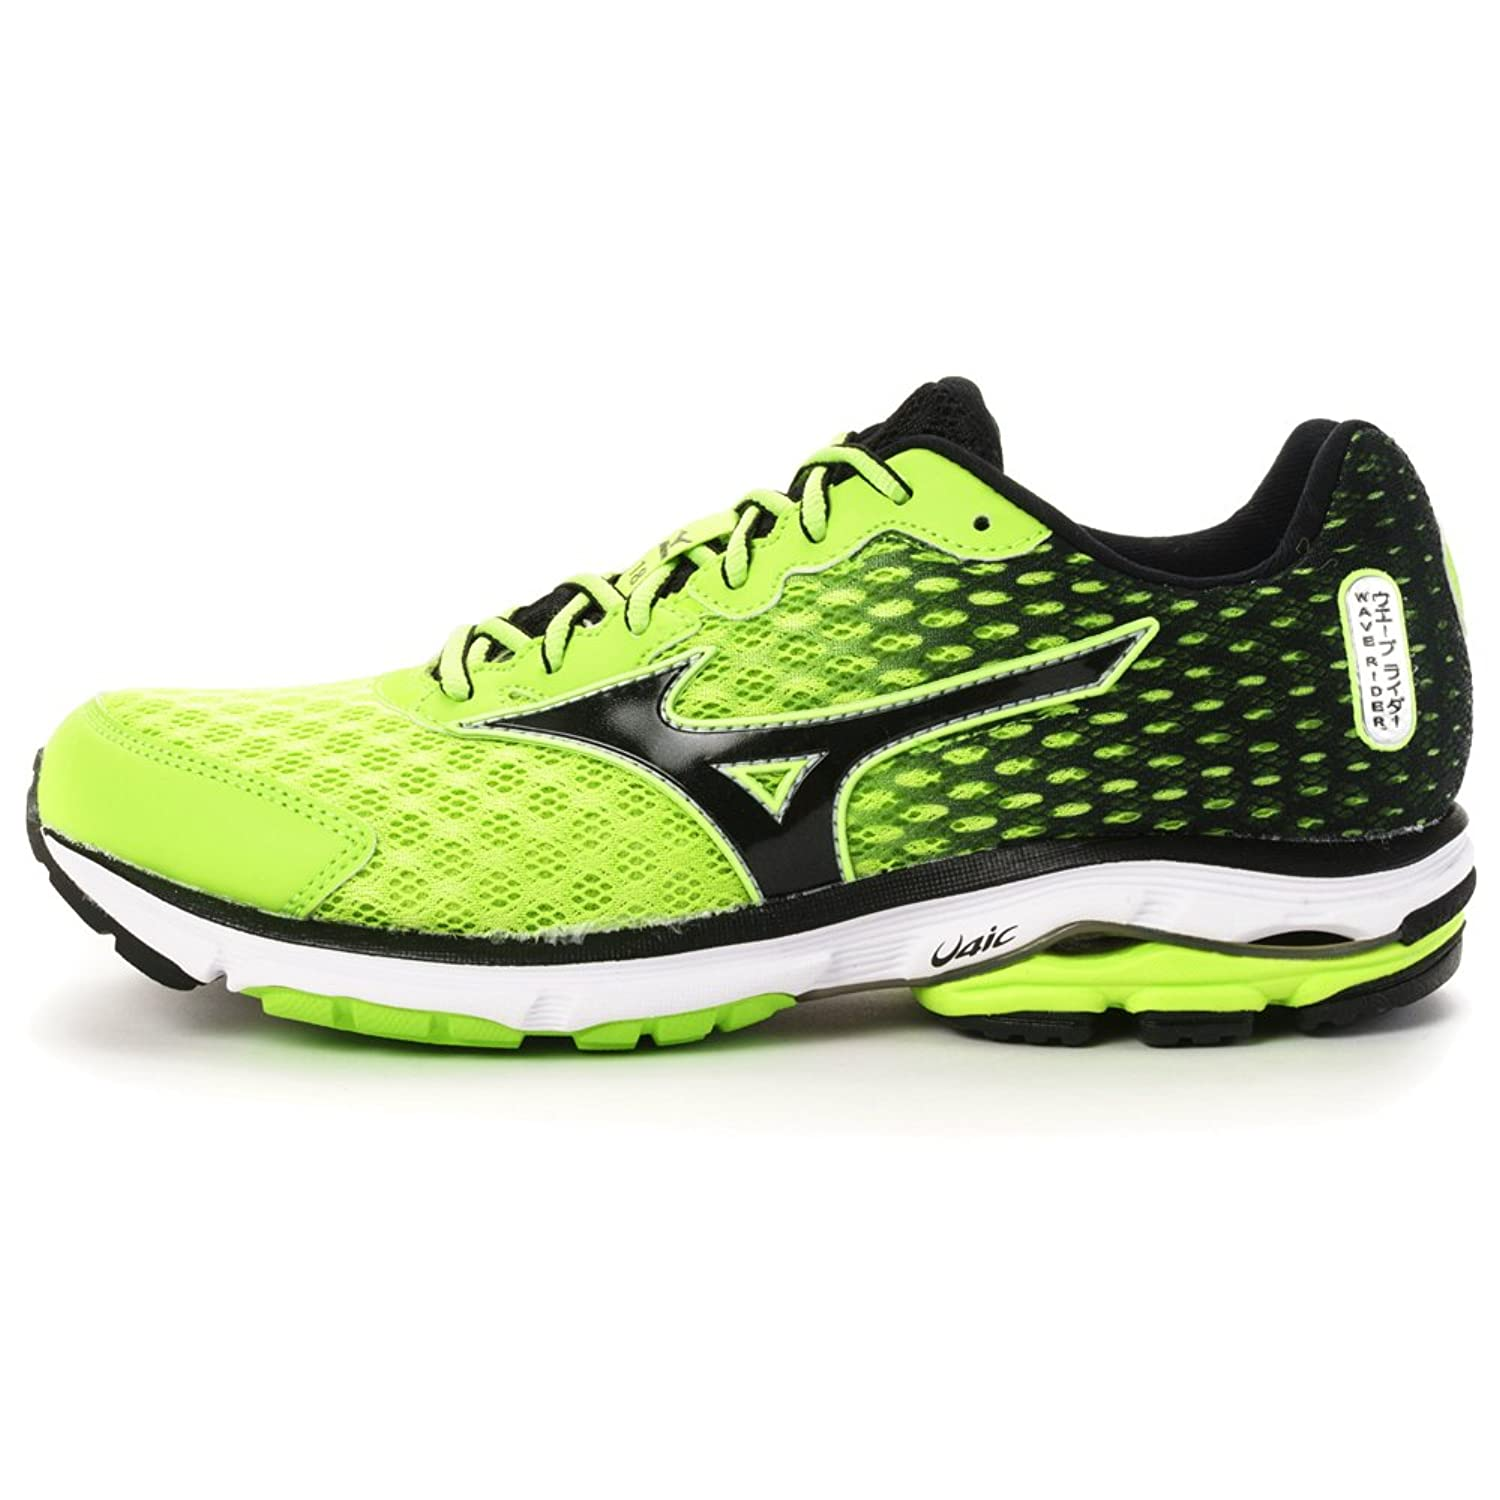 new style 29e9b 3f229 MIZUNO Men's WAVE RIDER 18 Running Shoes J1GC150310 lovely ...